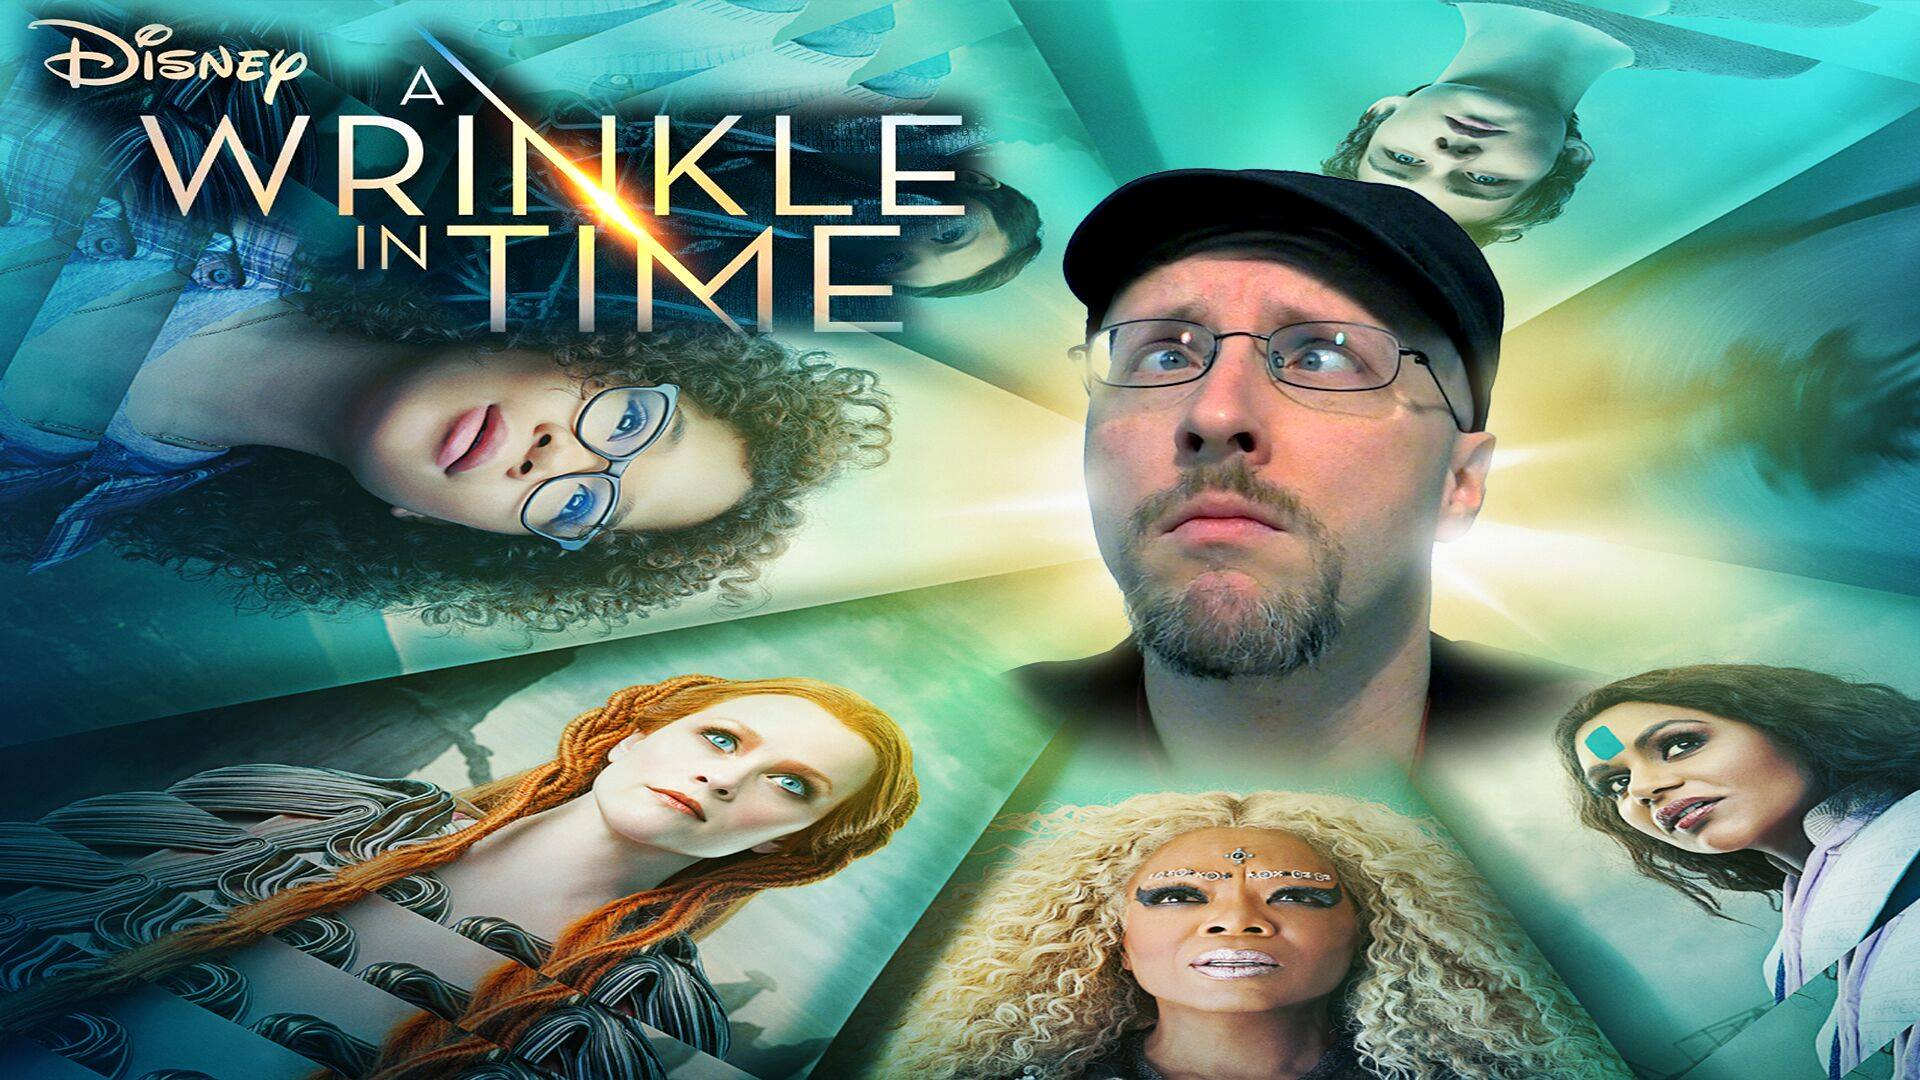 Wrinkle in time nc